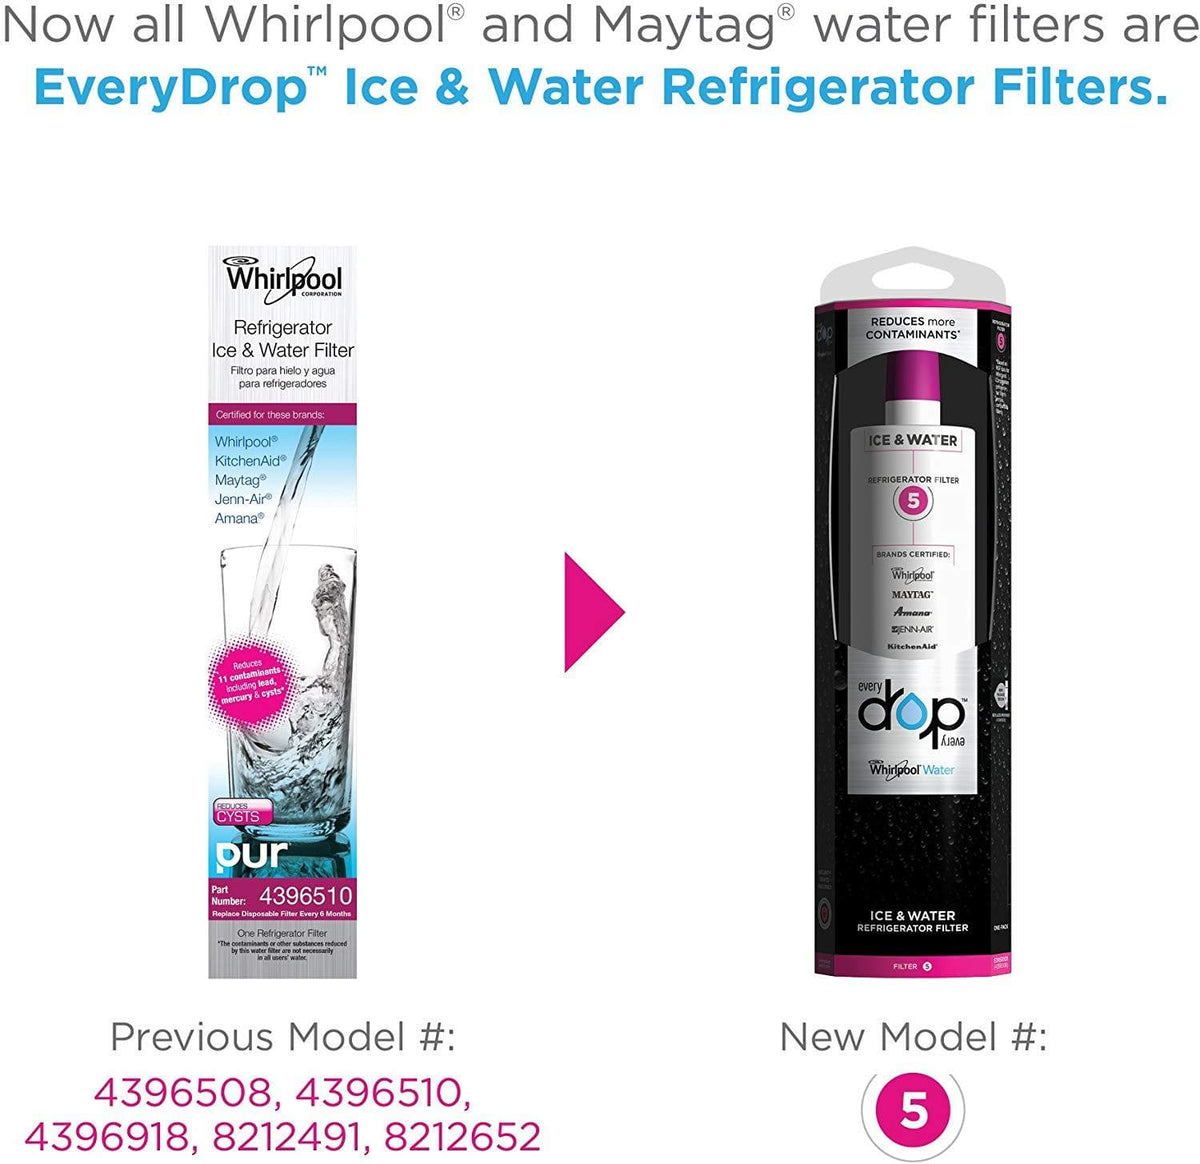 Whirlpool EveryDrop EDR5RXD1 Refrigerator Water Filter - 1 Pack